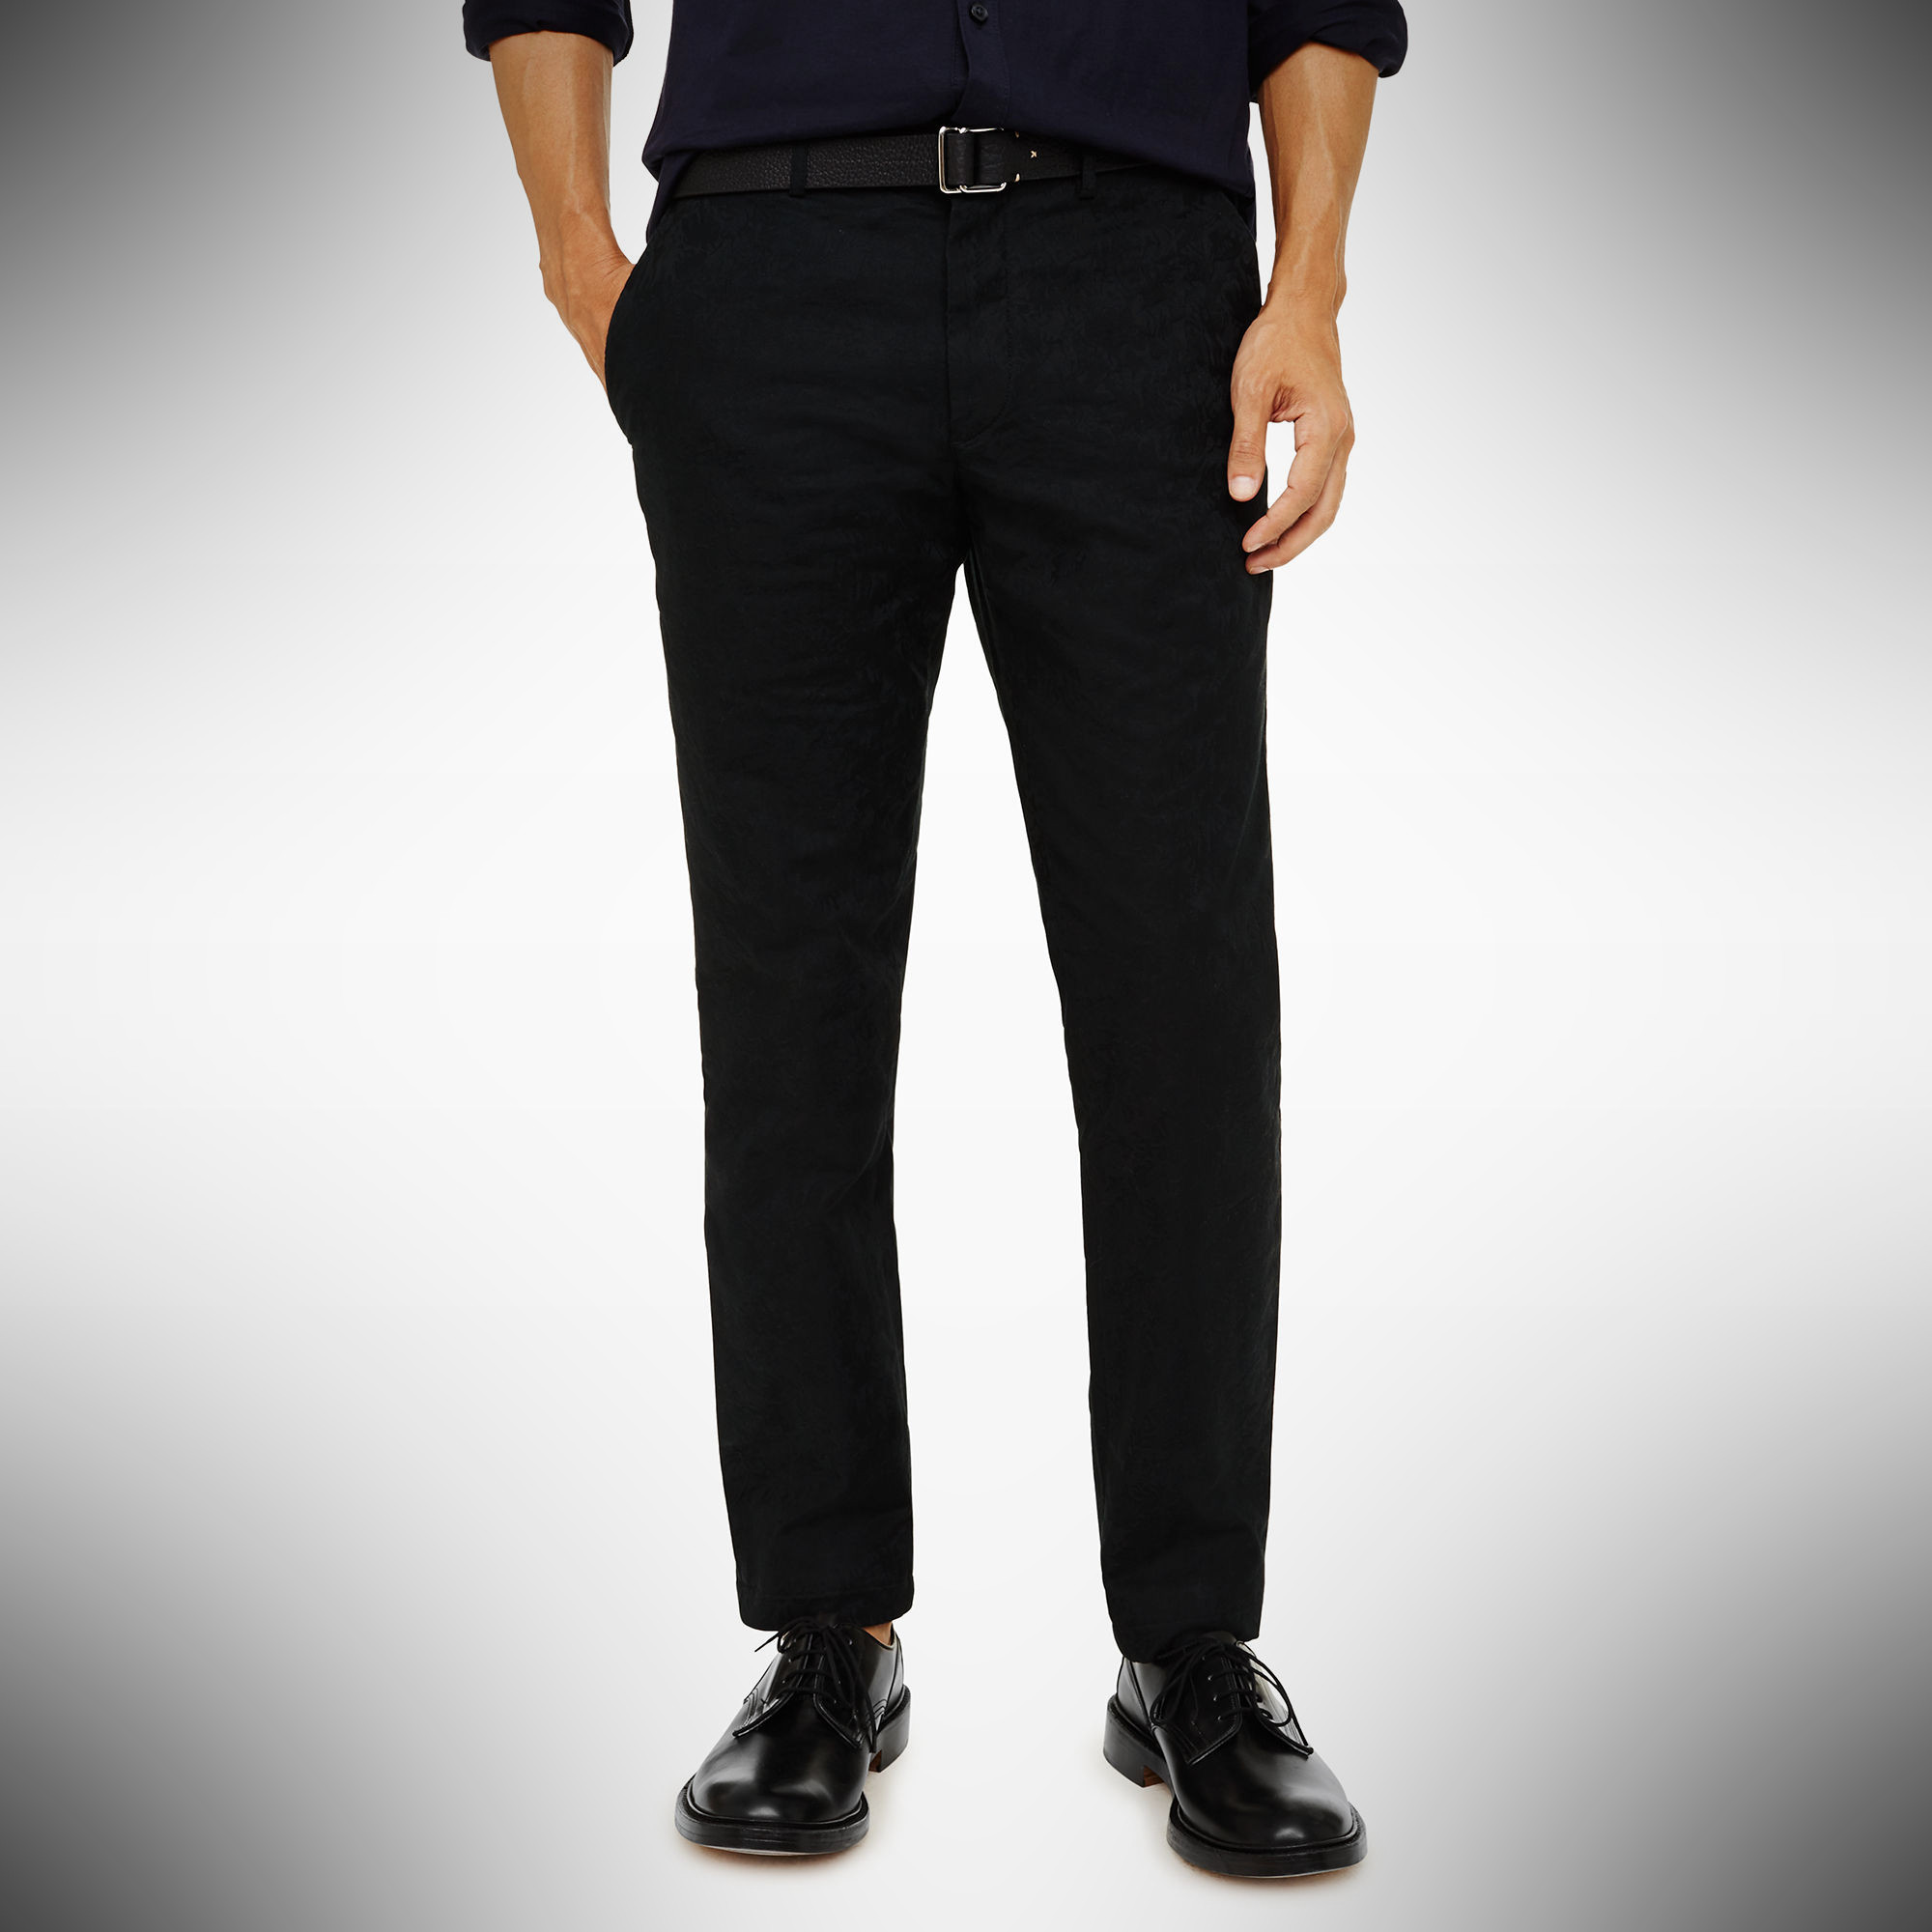 15 Stylish Summer Pants for Men: Office Wear Edition